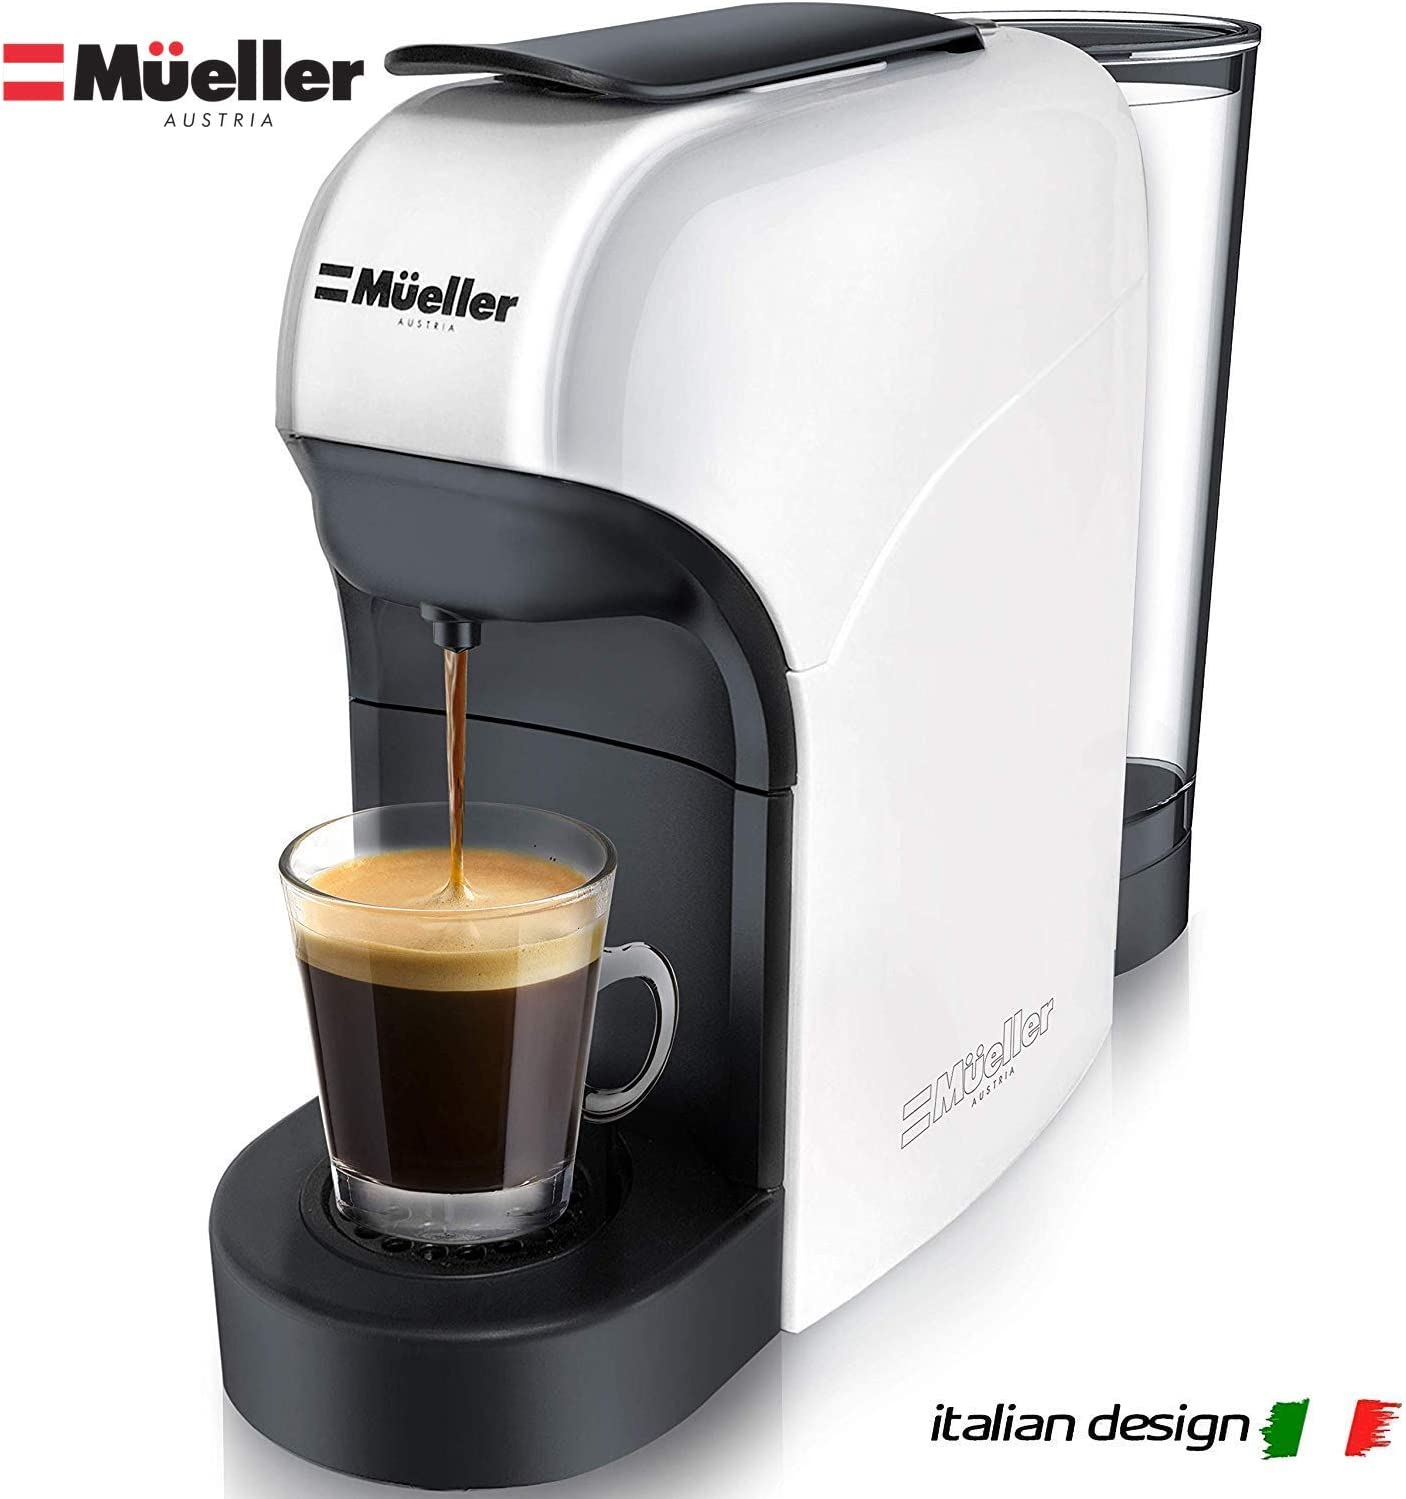 Mueller Espresso Machine for Nespresso Compatible Capsule, Premium Italian 20 Bar High Pressure Pump, 25s Fast Heating with Energy Saving System, Programmable Buttons for Espresso and Lungo, 1400W